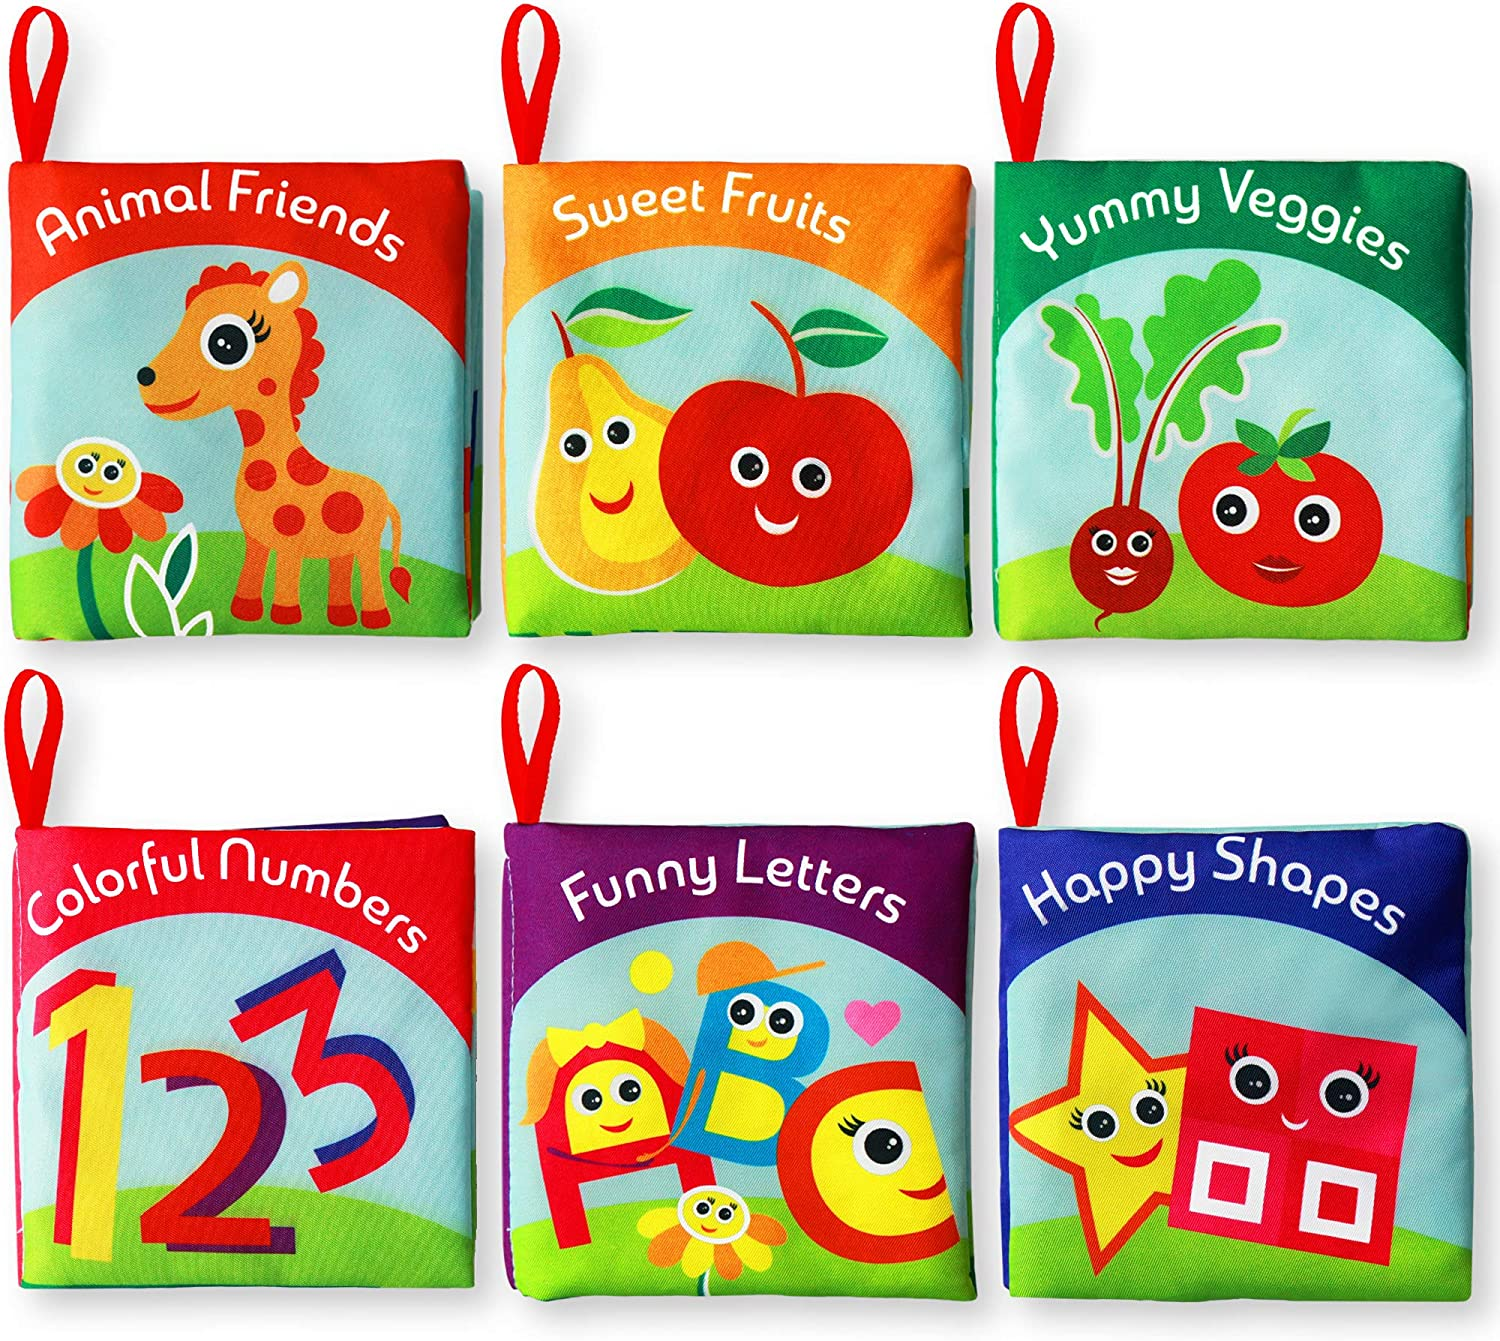 NEWSTYLE Soft Books 6Pcs Baby Cloth Books Nontoxic Fabric Baby Cloth Activity Crinkle Soft Books Baby Bath Books Early Education Learning Book for Infants Boys and Girls